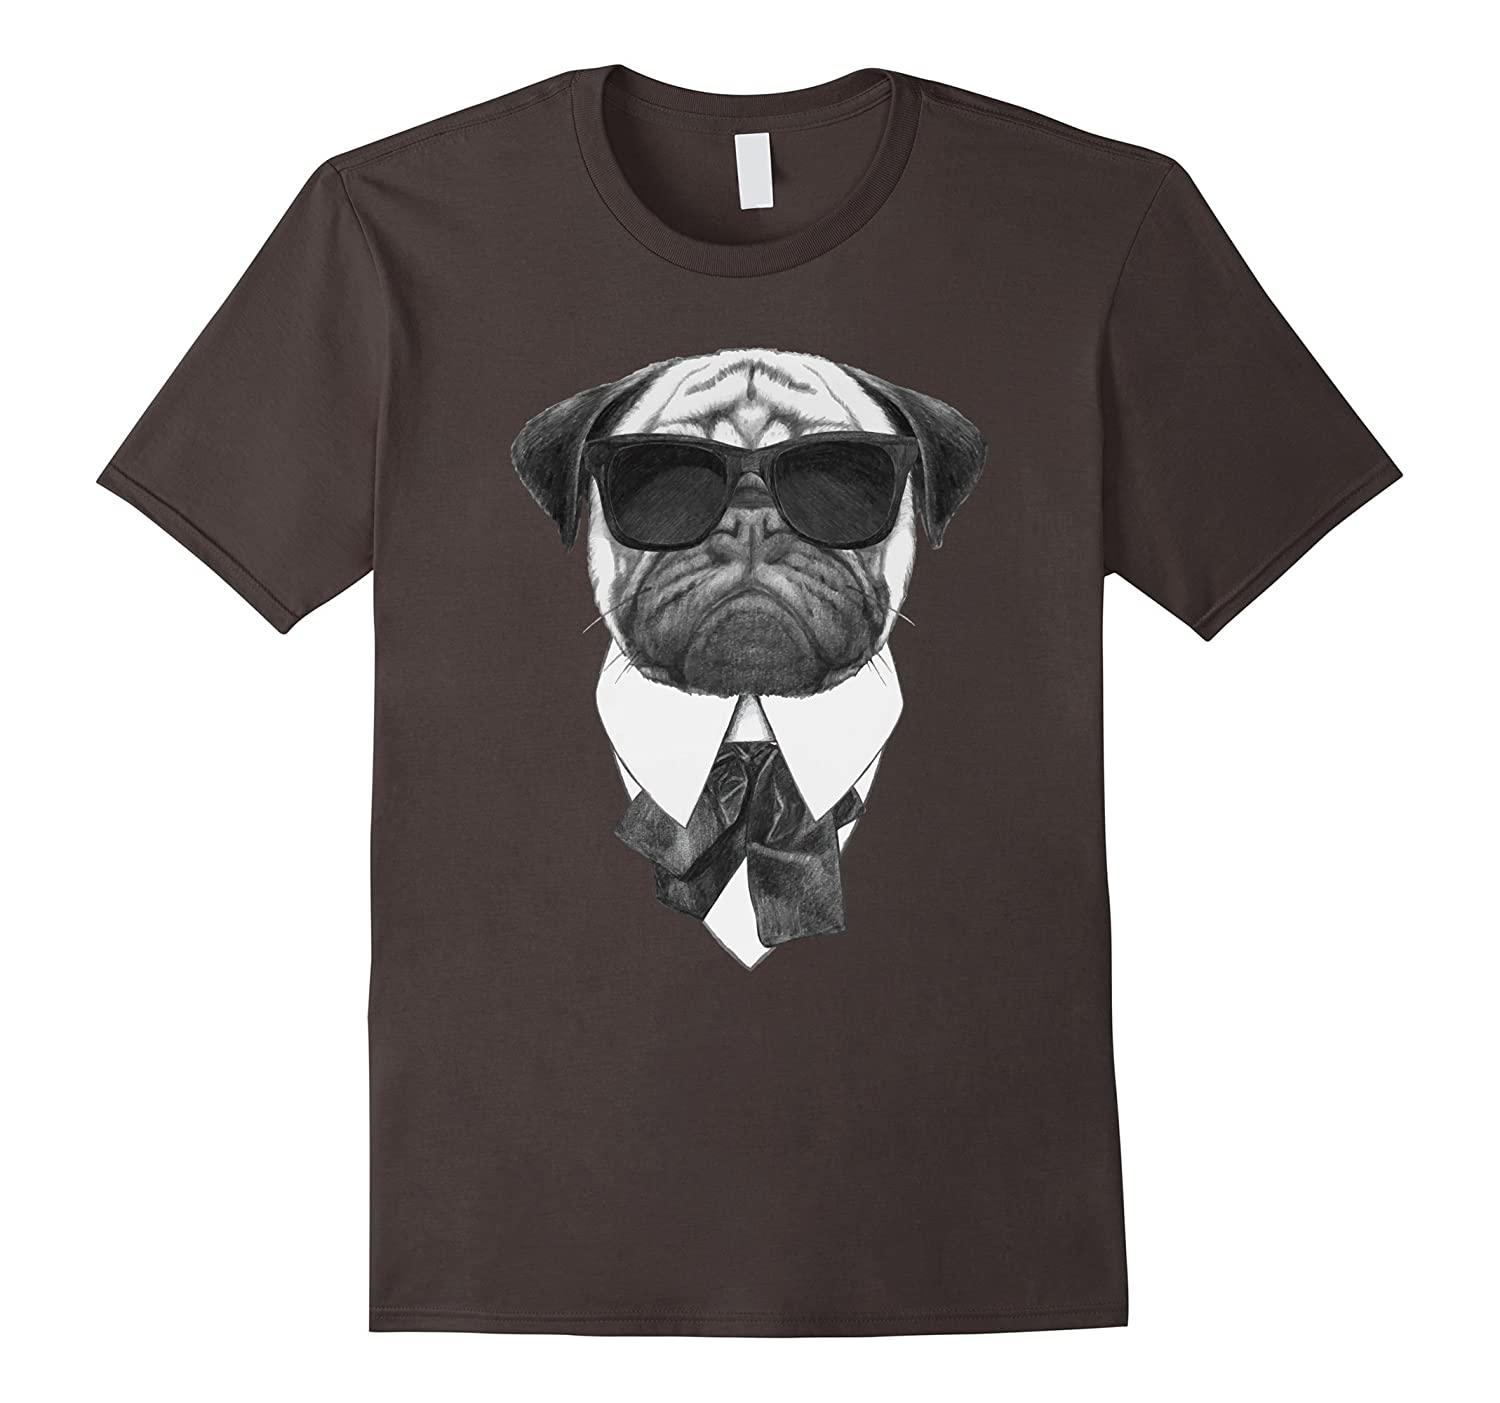 Pug in a Suit and Bow Tie T-Shirt - Men, Women and Children-BN